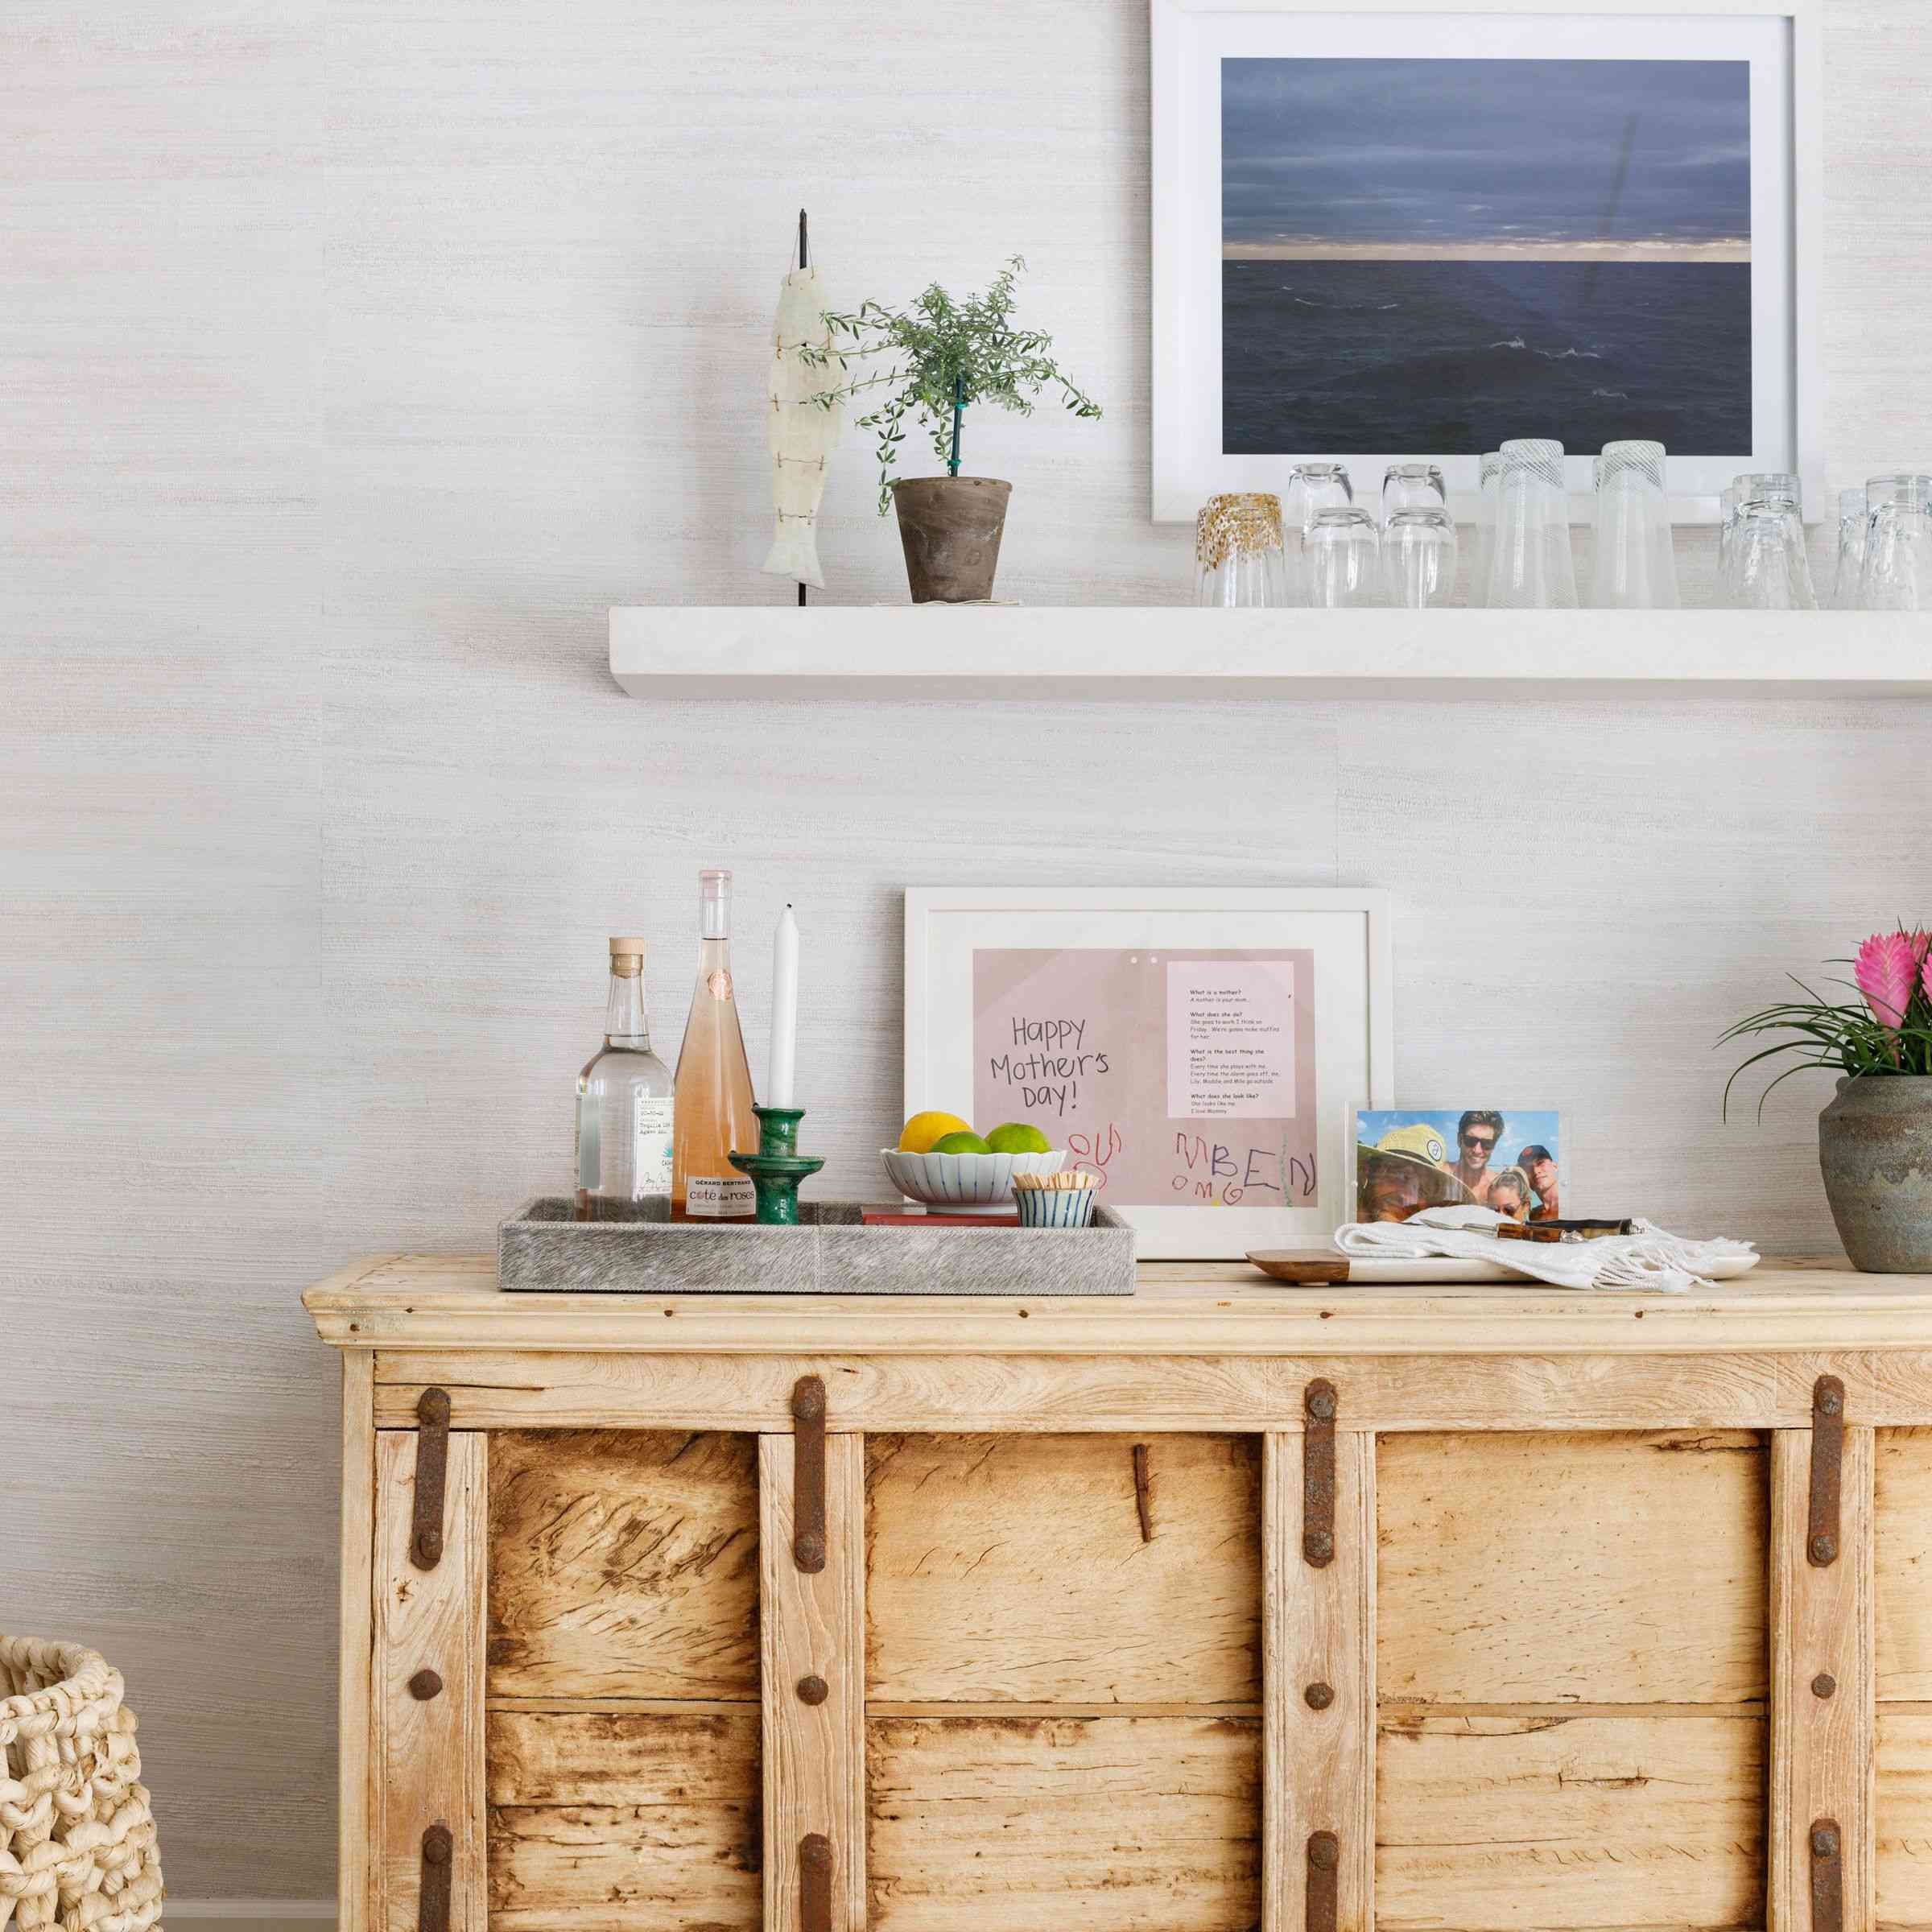 Rustic credenza with modern decor above by Andrea Goldman Design